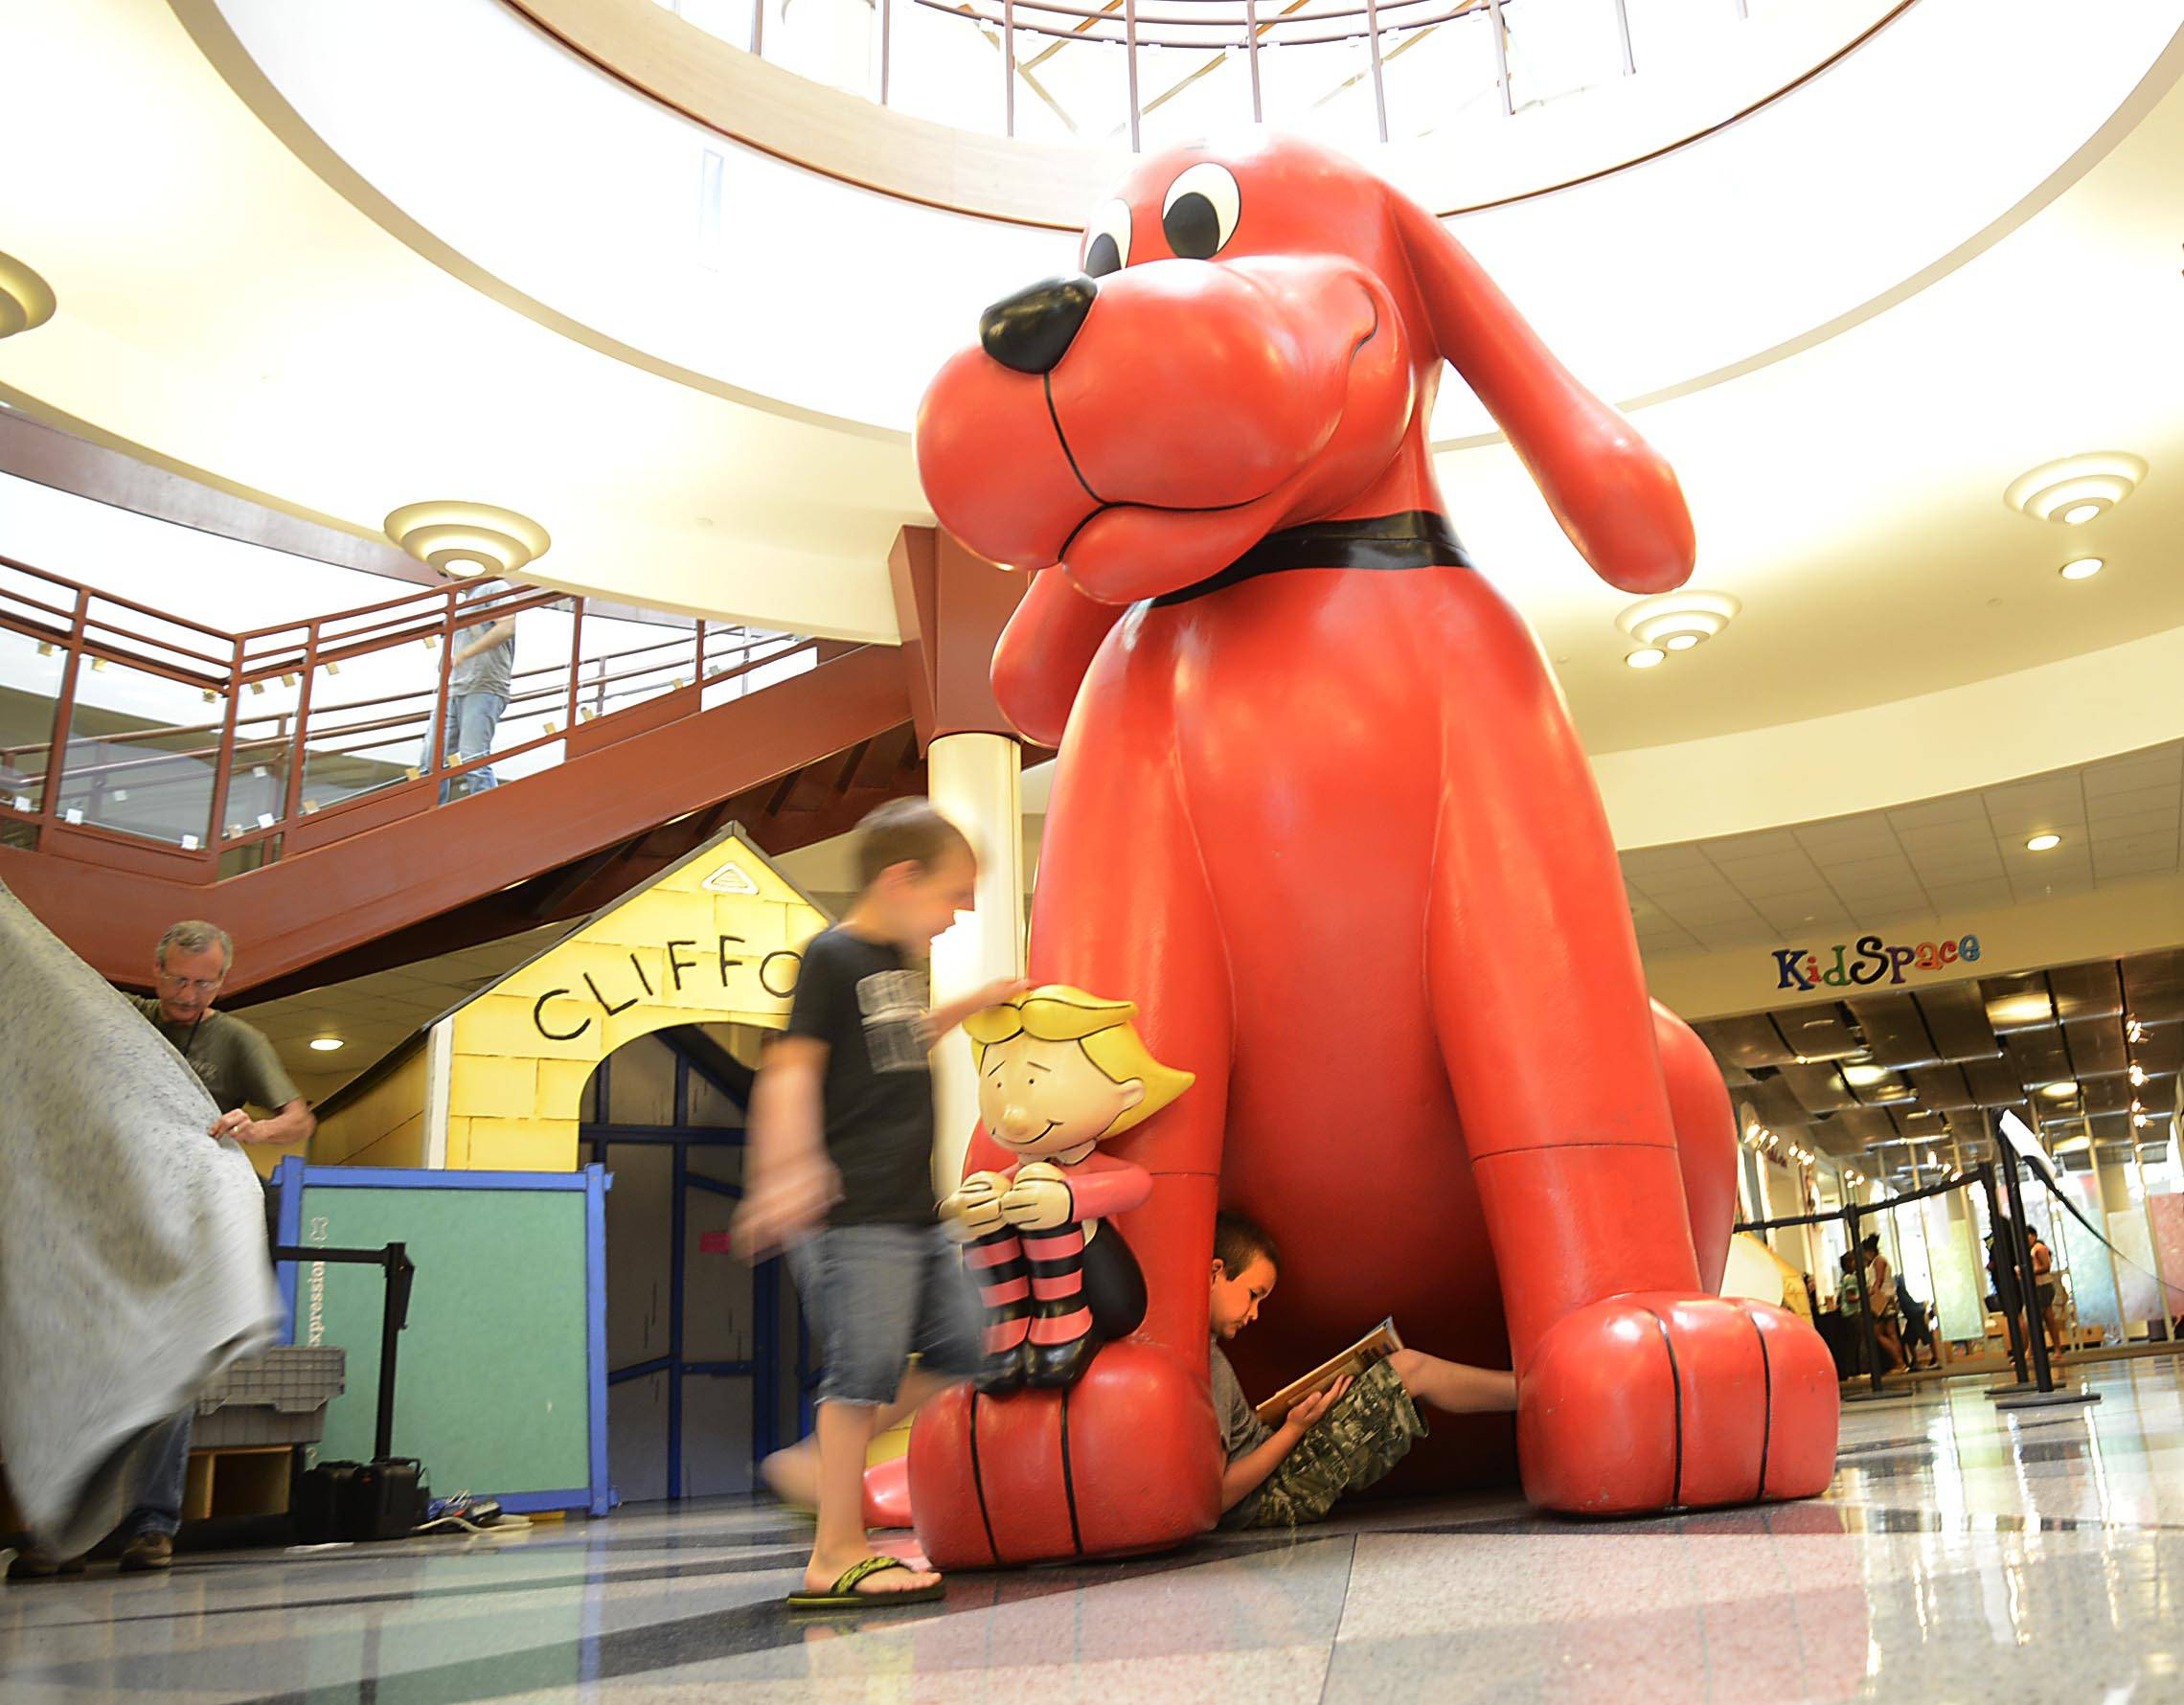 Trevor Willis, 7, sits under a 9-foot Clifford the Big Red Dog exhibit at the Gail Borden Public Library Tuesday in Elgin as his brother, Jonathan, explores the site. The Elgin boys were with their mother, Clara. The 10-site, interactive exhibit officially opens Saturday as part of the library's summer reading program called Paws to Read.